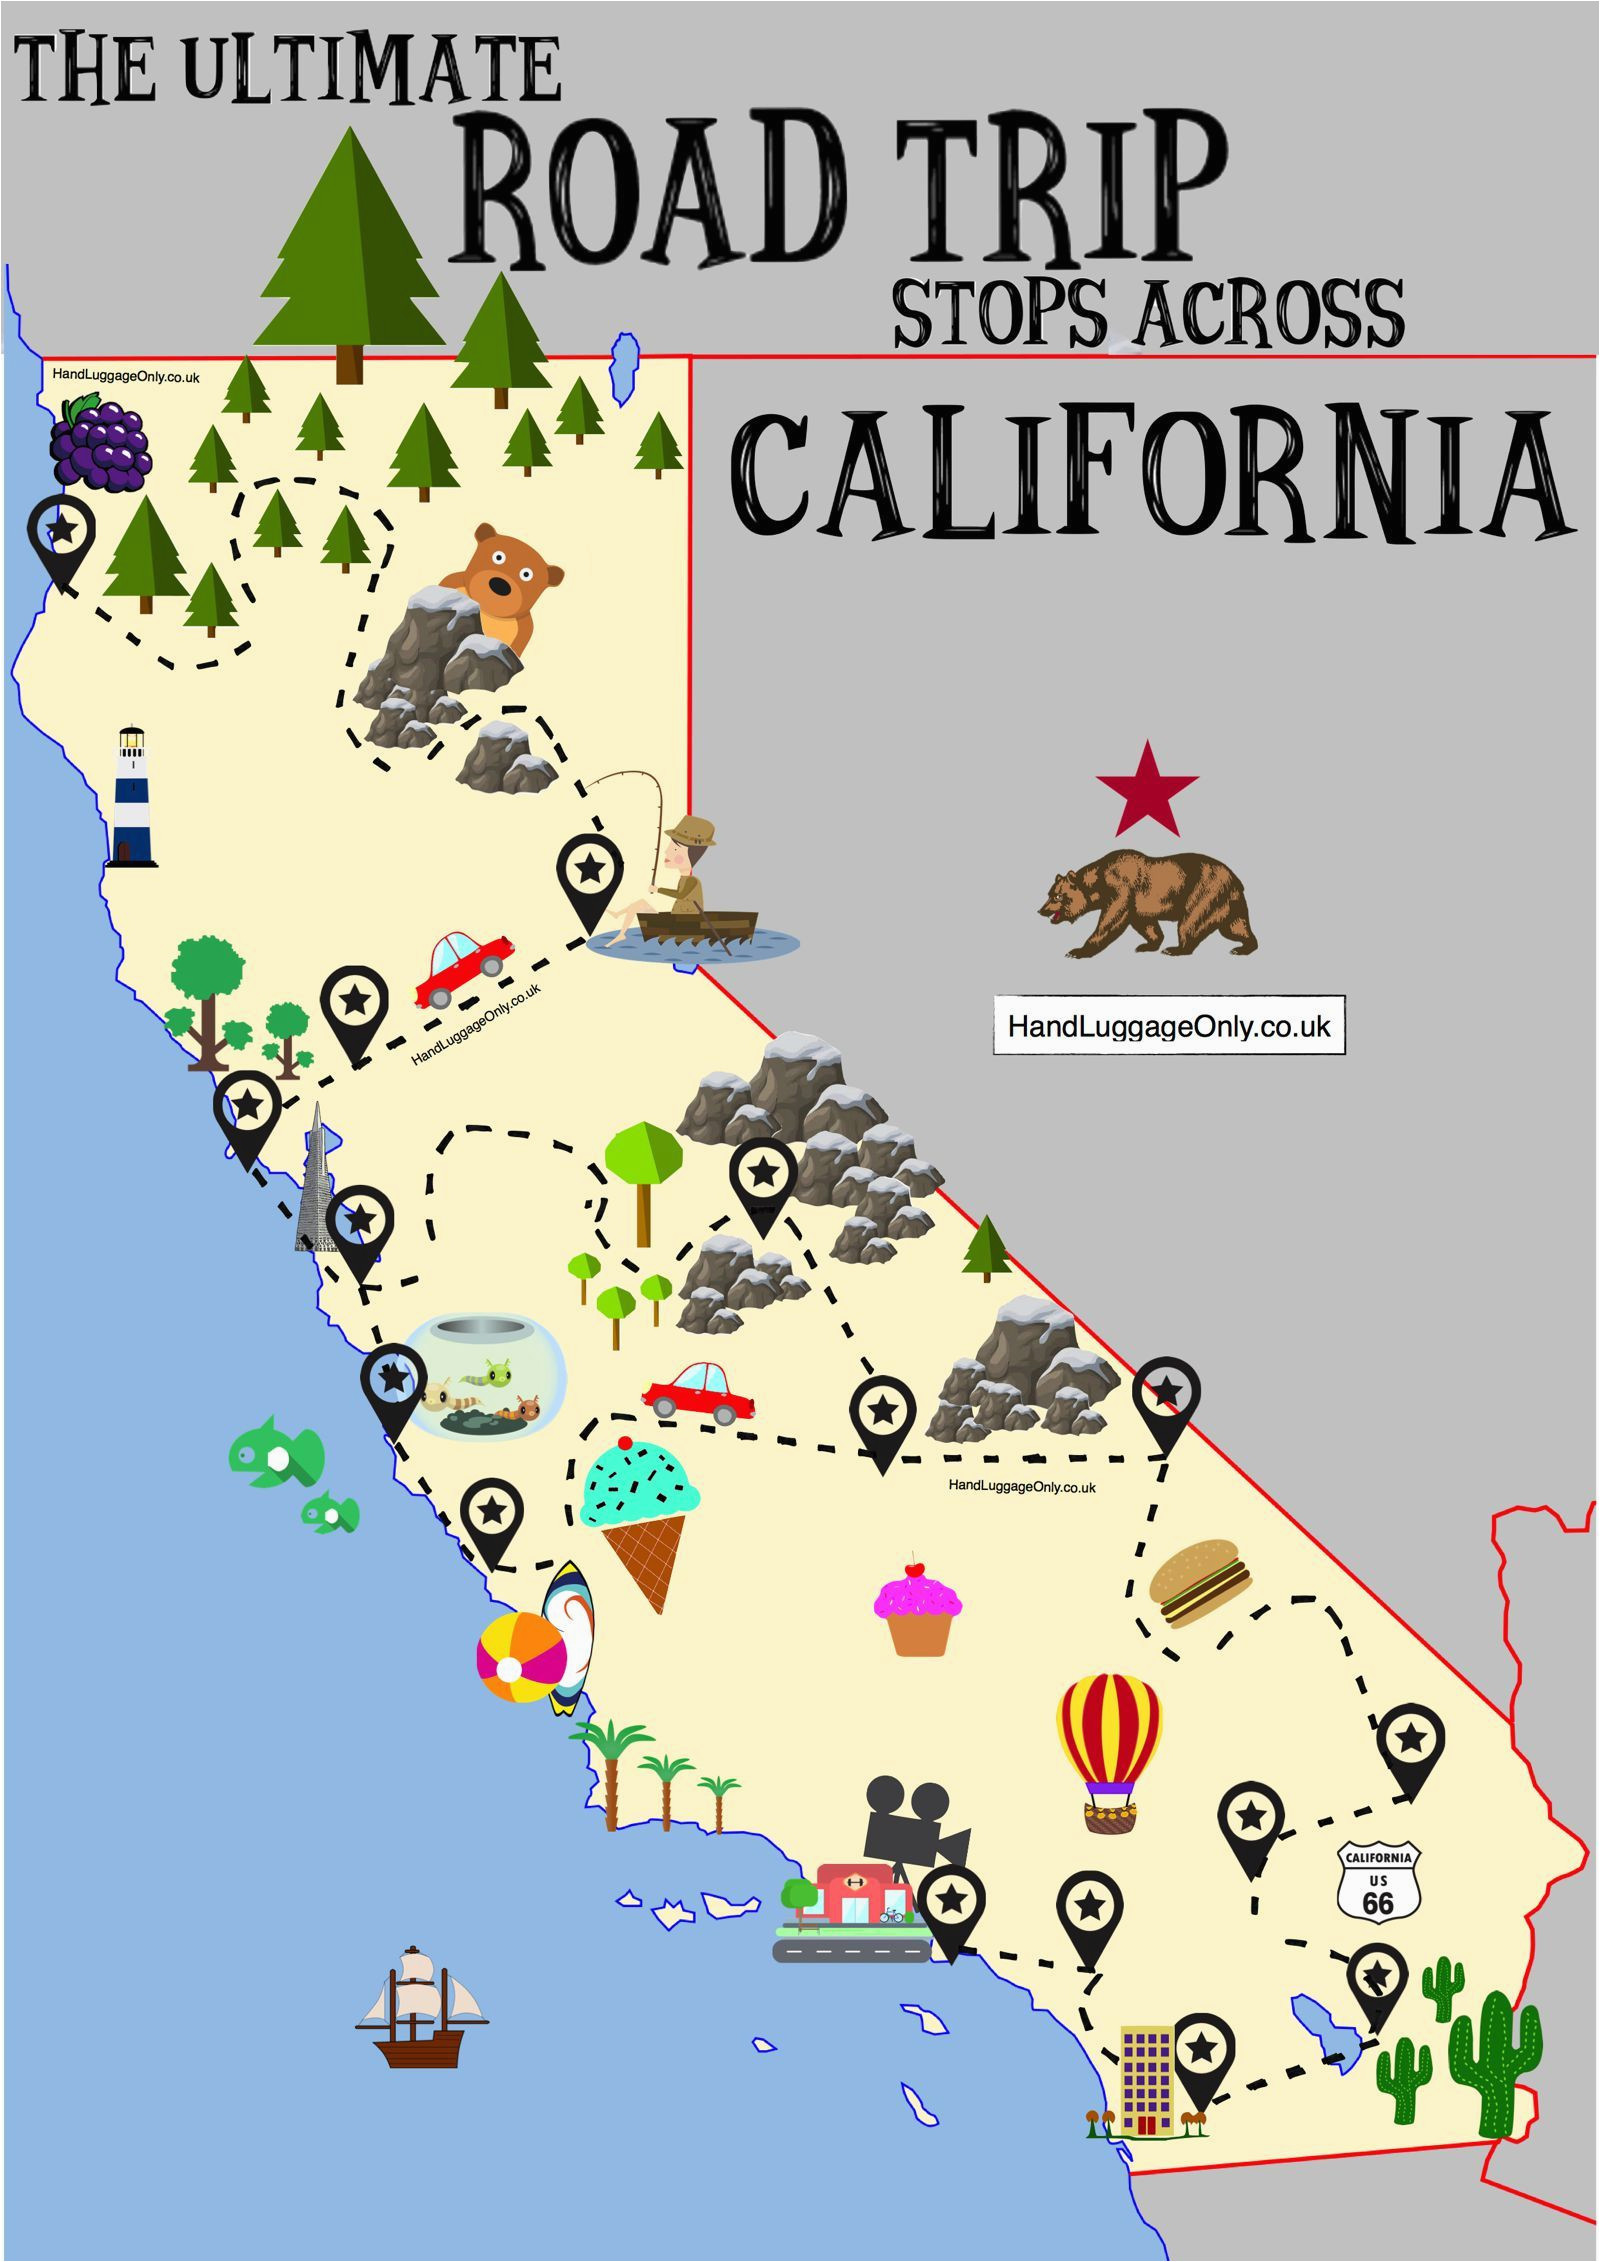 Map Of Route 1 California the Ultimate Road Trip Map Of Places to Visit In California Travel